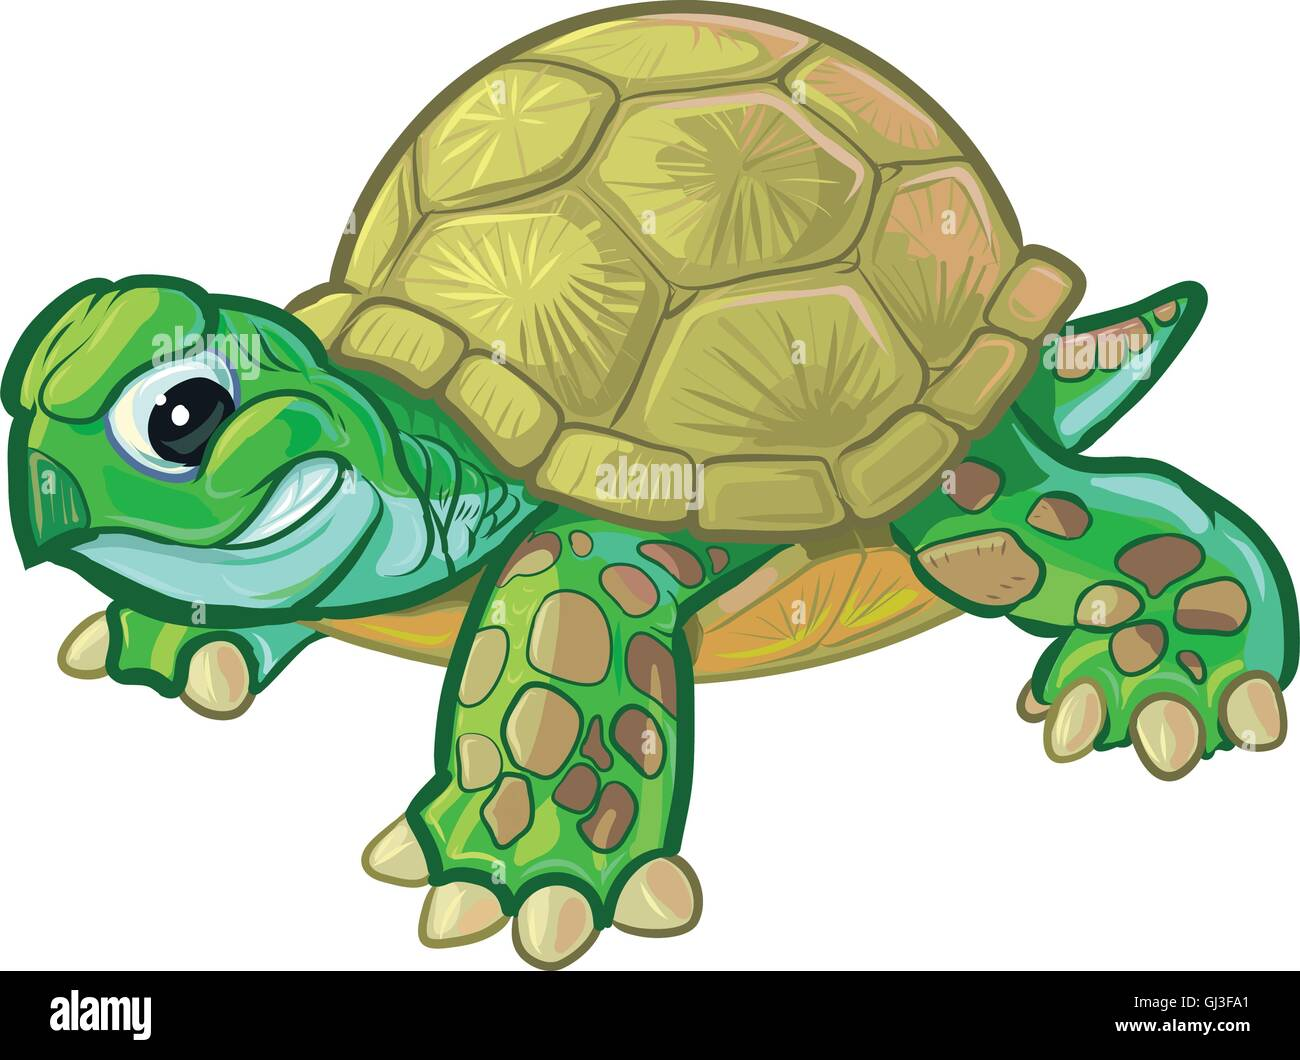 Vector cartoon clip art illustration of a cute but tough baby turtle or tortoise mascot with a feisty smirk or smile